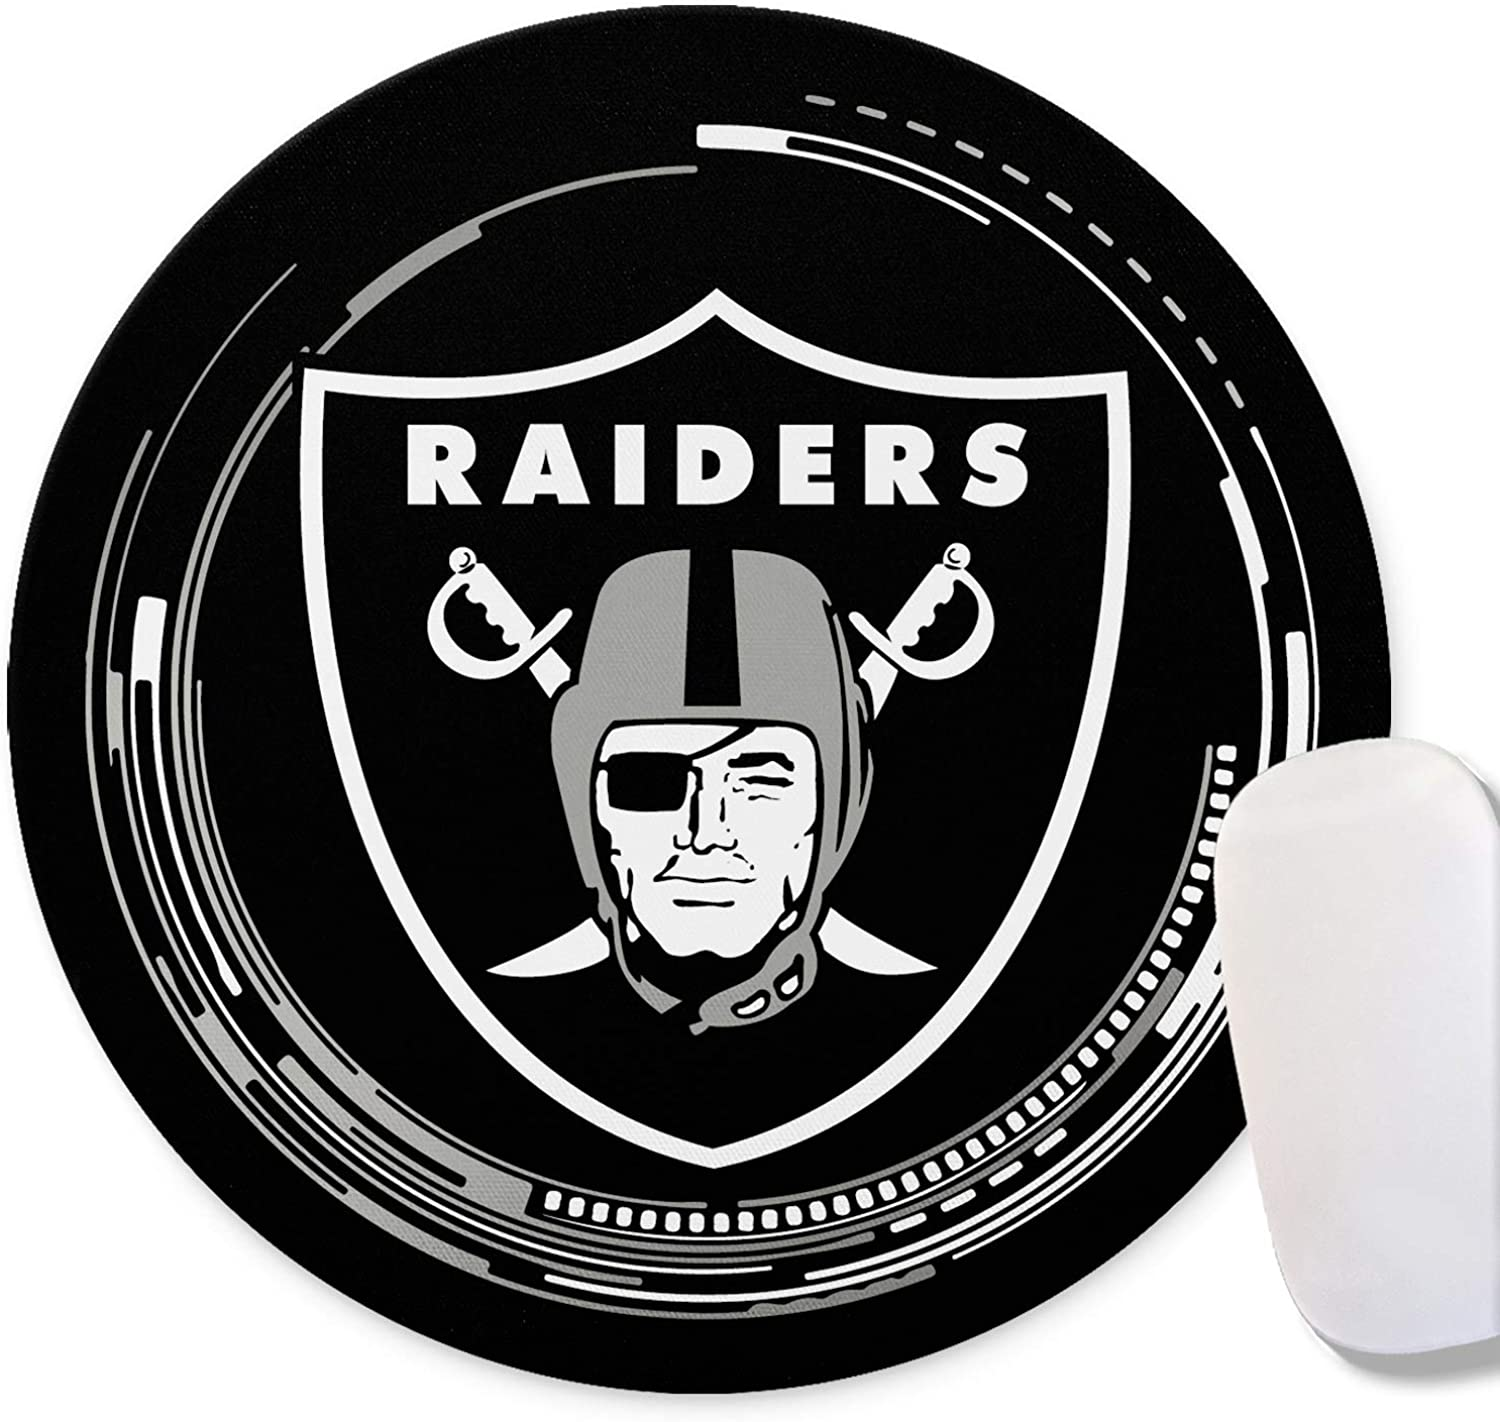 Rubber Base for Stable Grip CANDICE NFL Mouse Mat//Gaming Mouse Pad 8.7Inch Round Mouse pad Logo Creative Custom Non-Slip Mouse Mat| Improved Precision and Speed